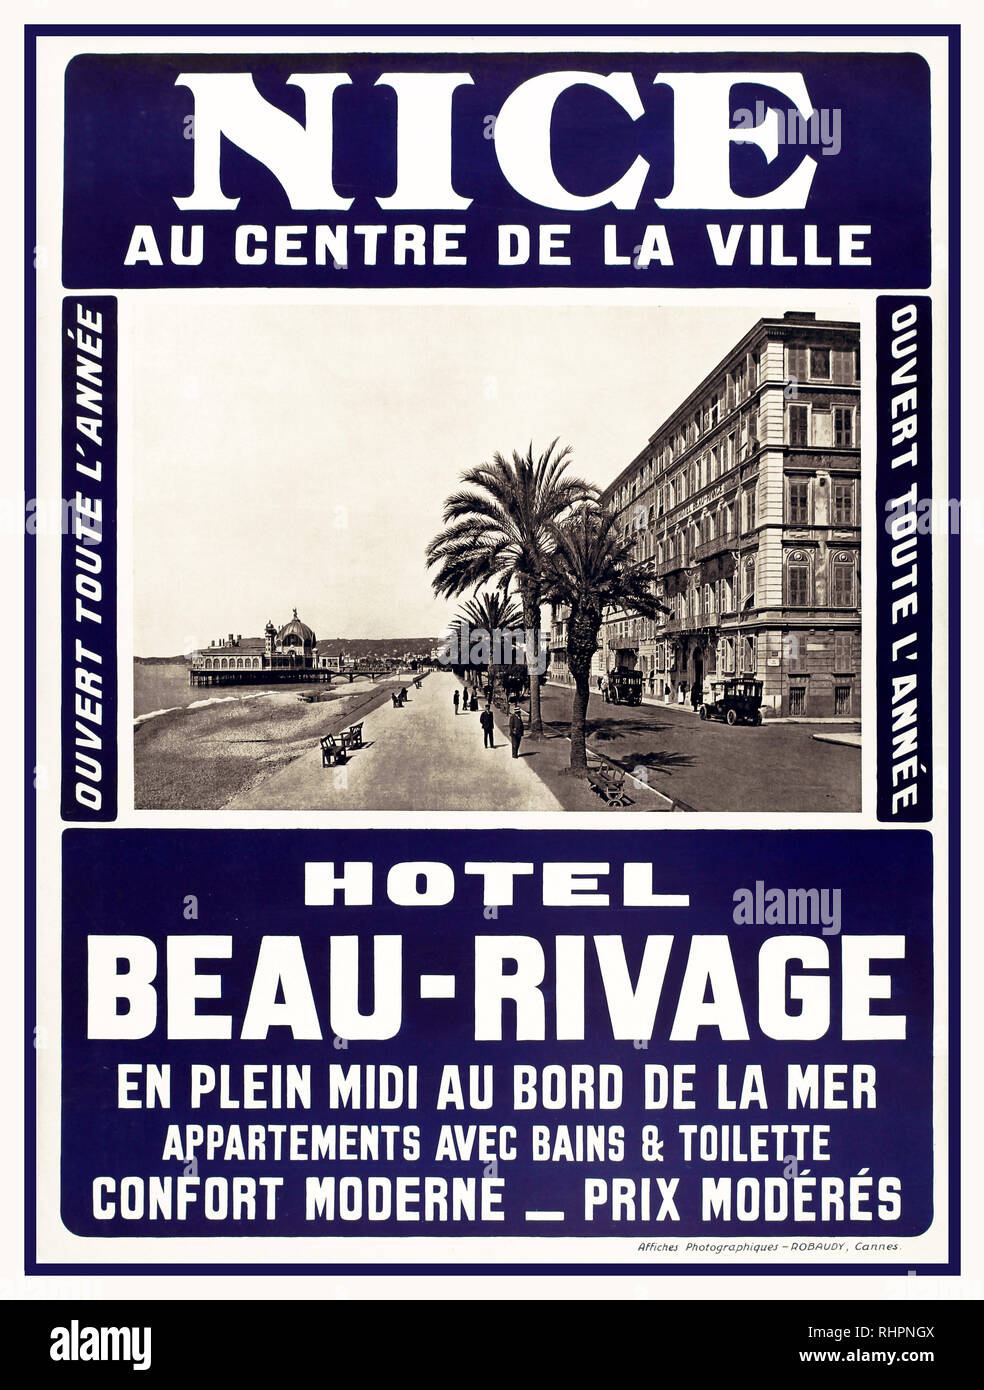 1900's Vintage French travel advertising poster for the Hotel Beau-Rivage on the Cote d'Azur in Nice - In the city centre Open all year On the sea front Accommodation with baths and toilets Modern comfort Moderate prices. Great design featuring a black and white photograph of the historic 1860 Hotel Beau-Rivage building with old classic cars outside, palm trees lining the riviera promenade with people walking along the sea front, a pier and hills in the background and the text around the image in stylised white letters on a dark blue background. One of the first hotels on the Nice promenade - Stock Image